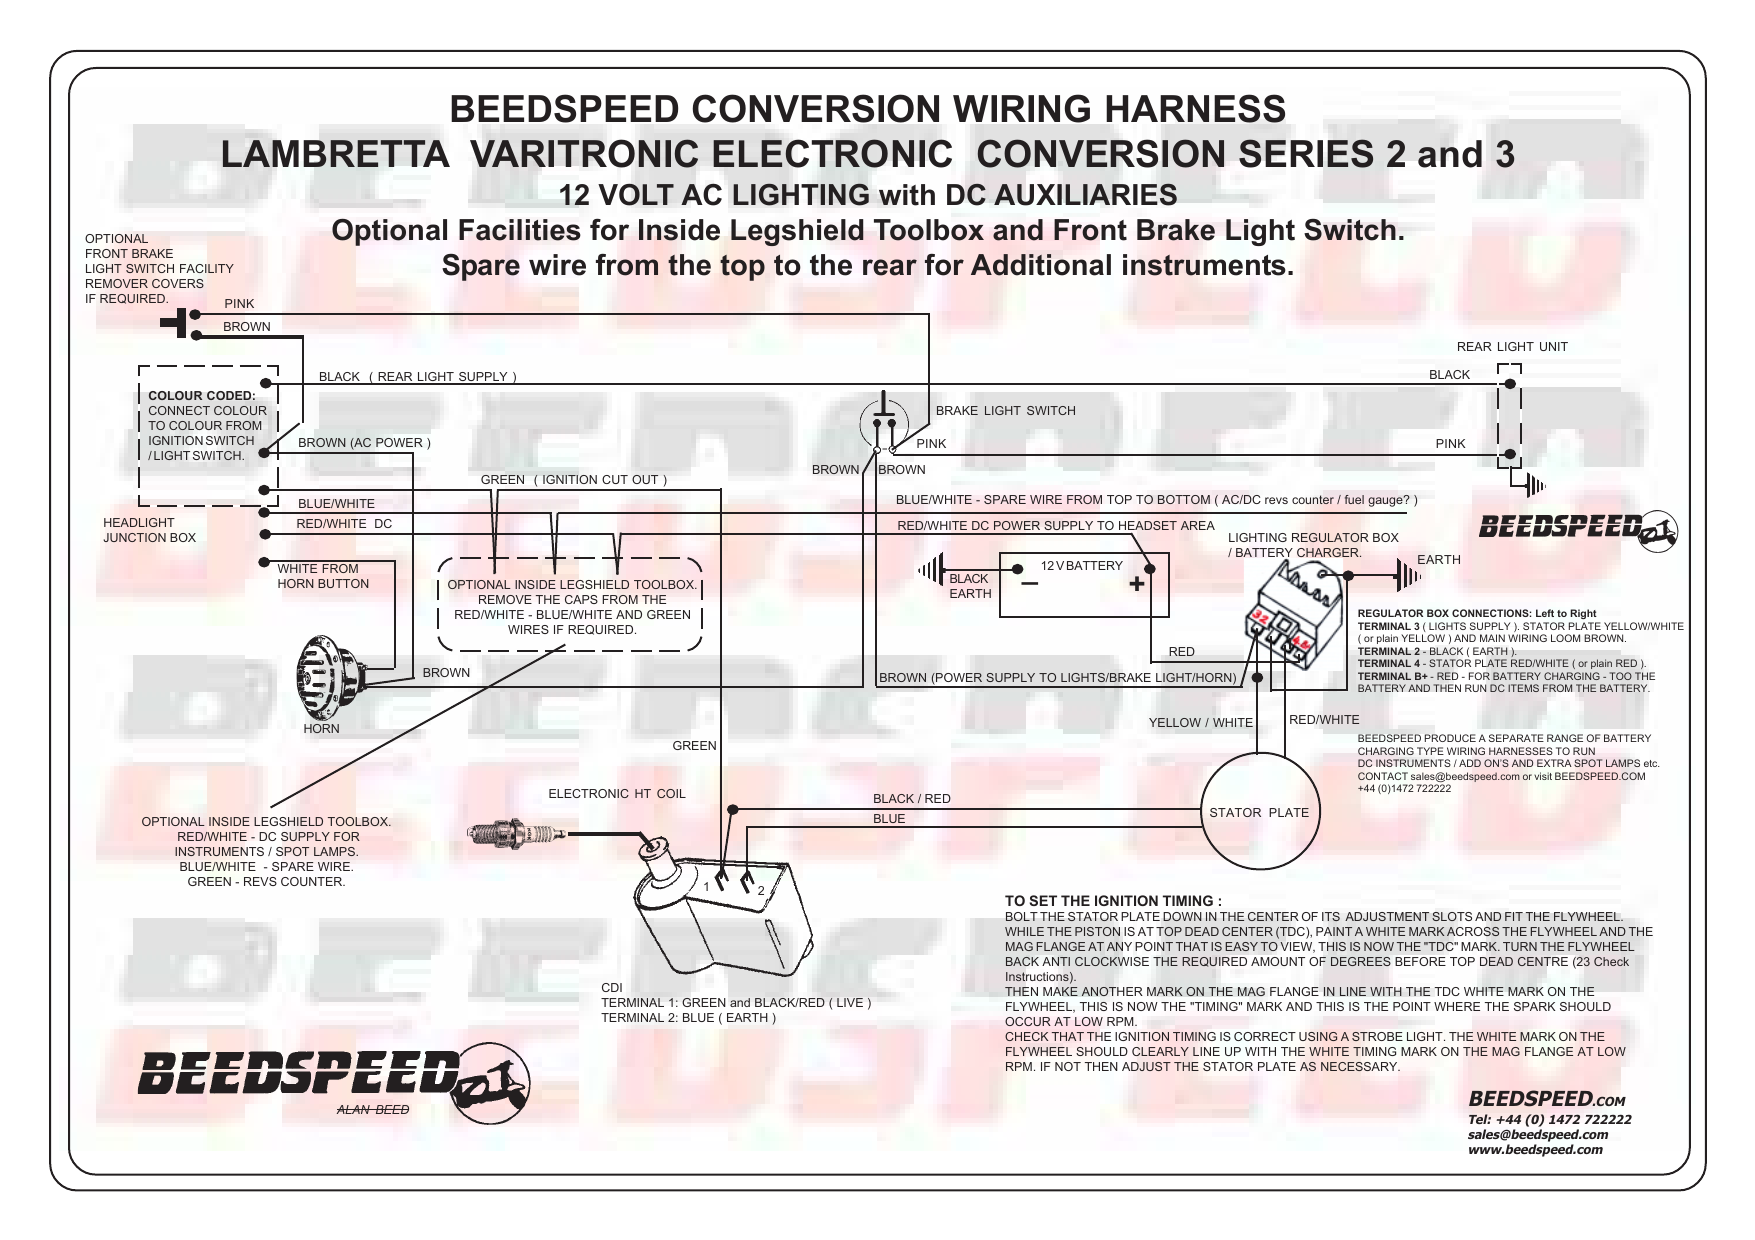 018556260_1 b4df7bce7d31e77b7a555d210f5450ac beedspeed conversion wiring harness lambretta lambretta 12v wiring diagram at bakdesigns.co